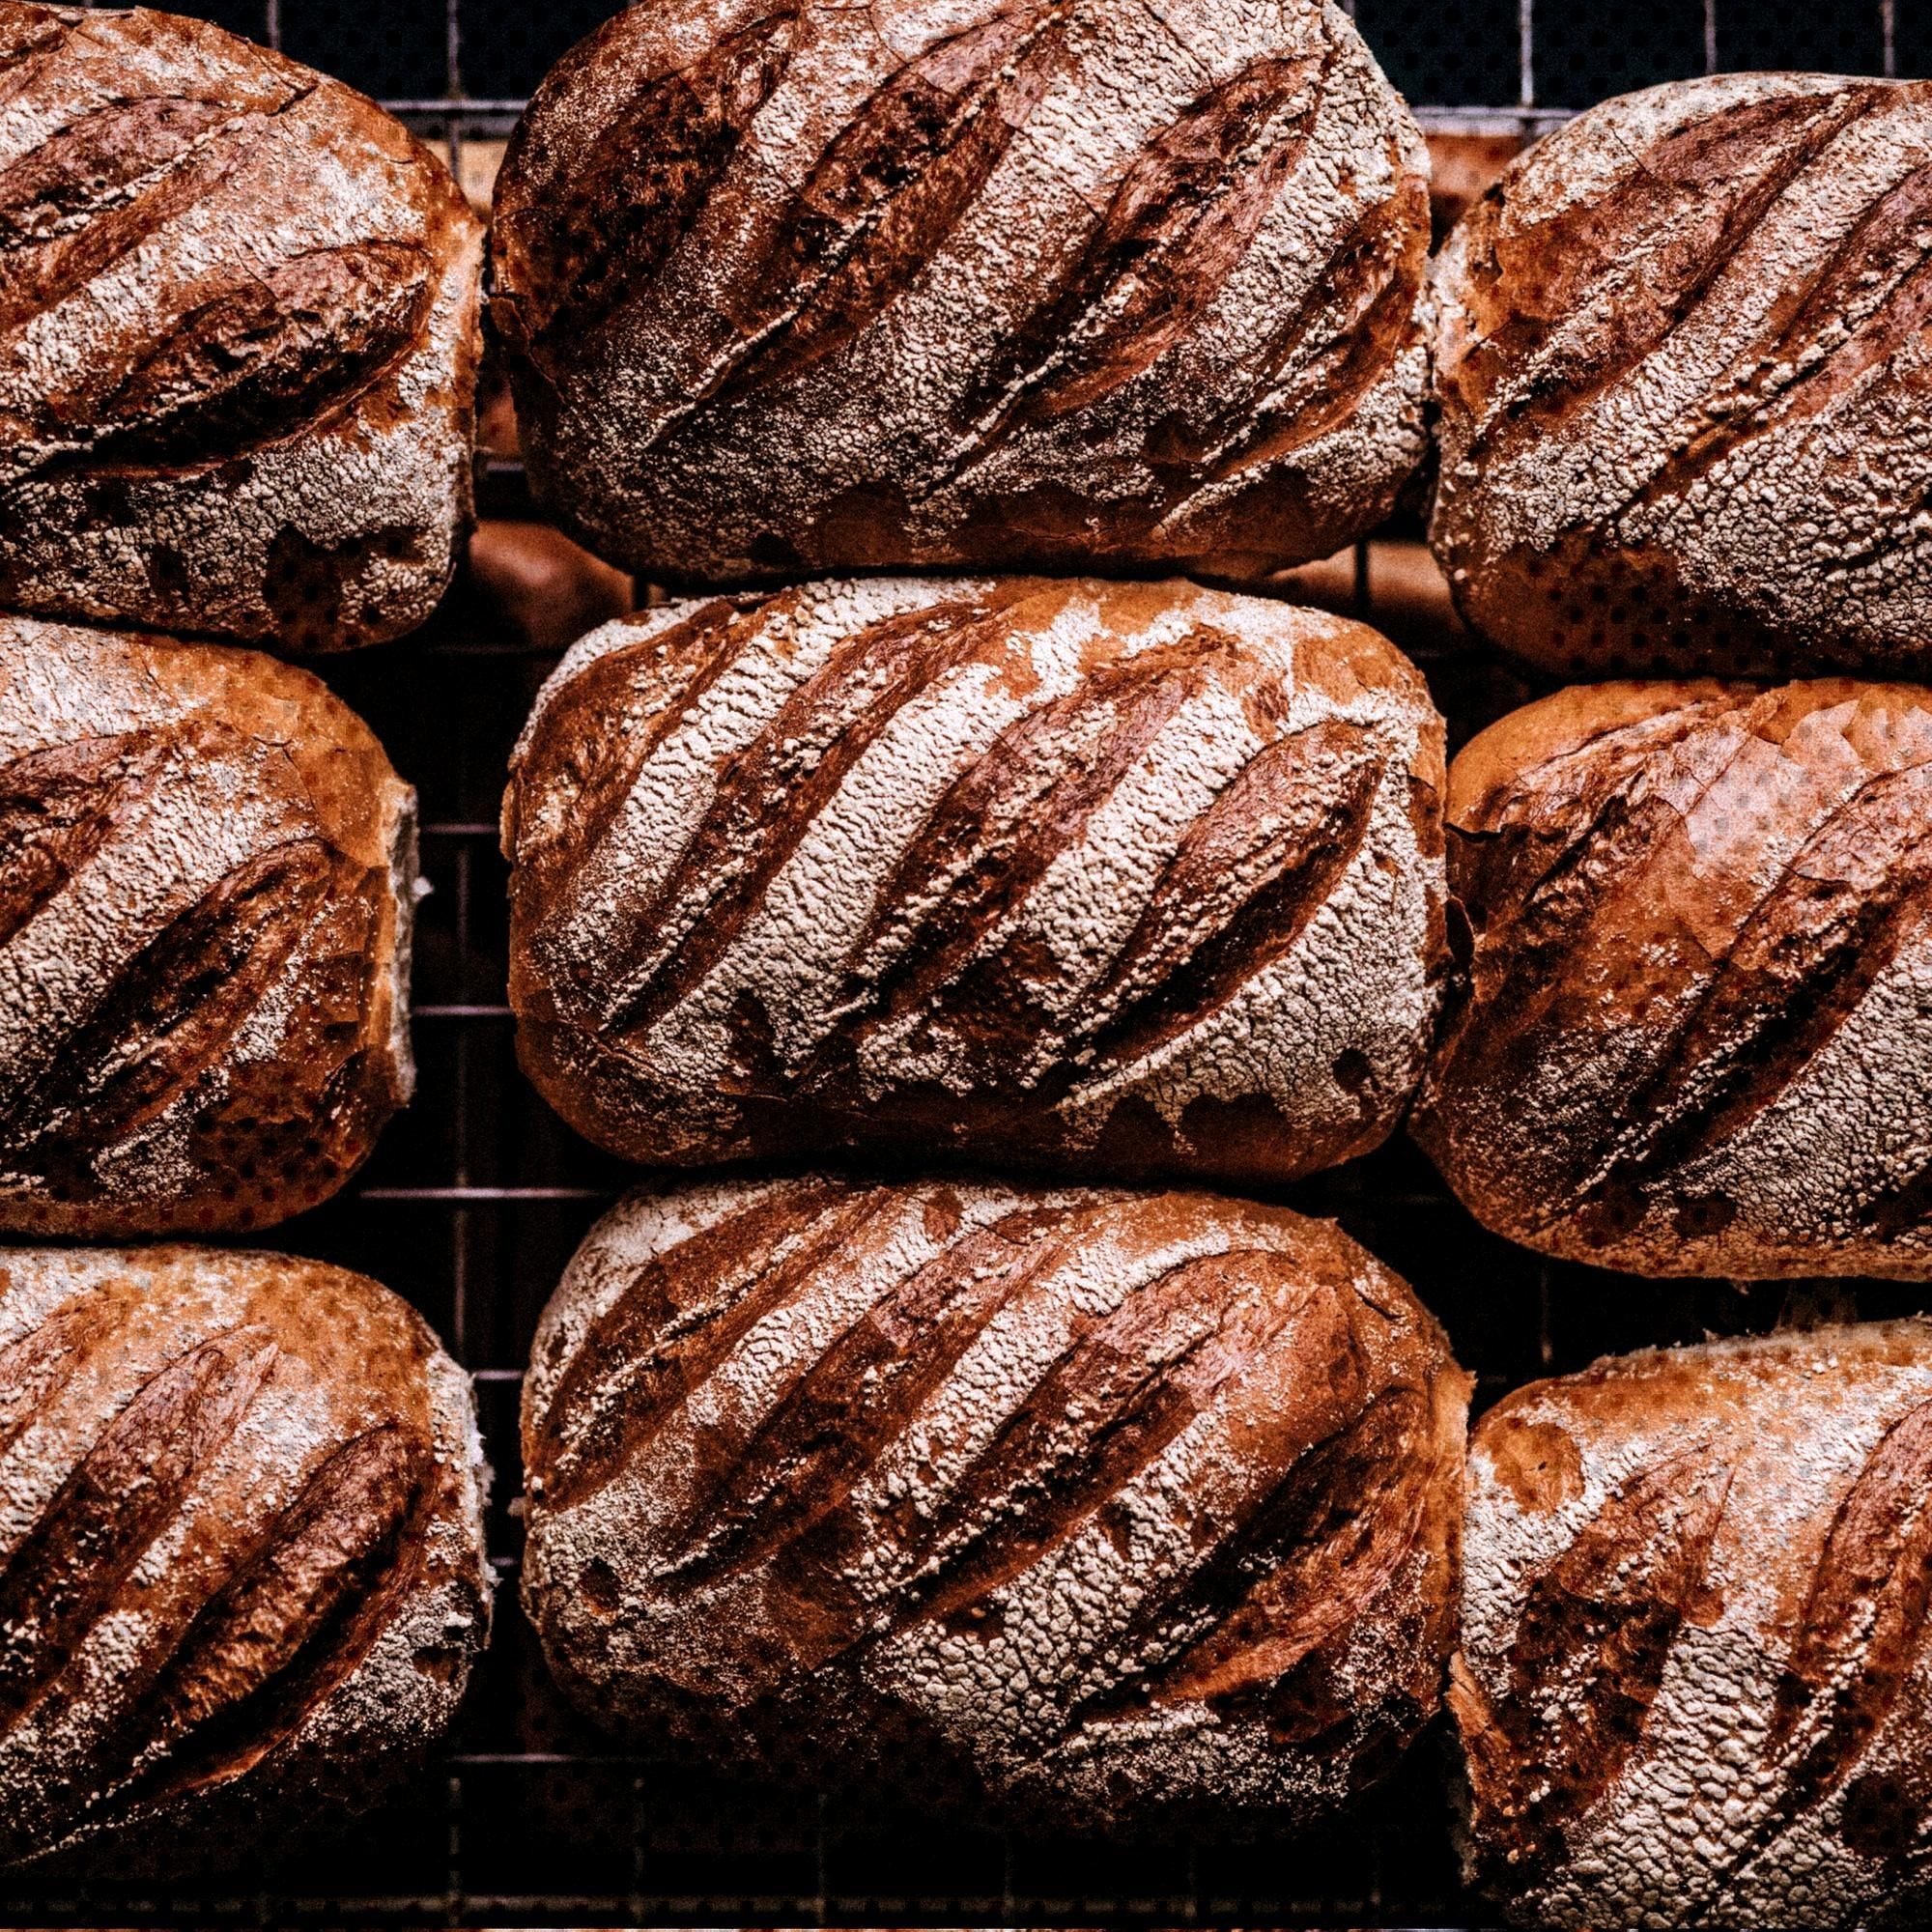 NEW WORK gt; gt; gt; gt; More images from the shoot for Independent, artisan bakery rebrand with ma